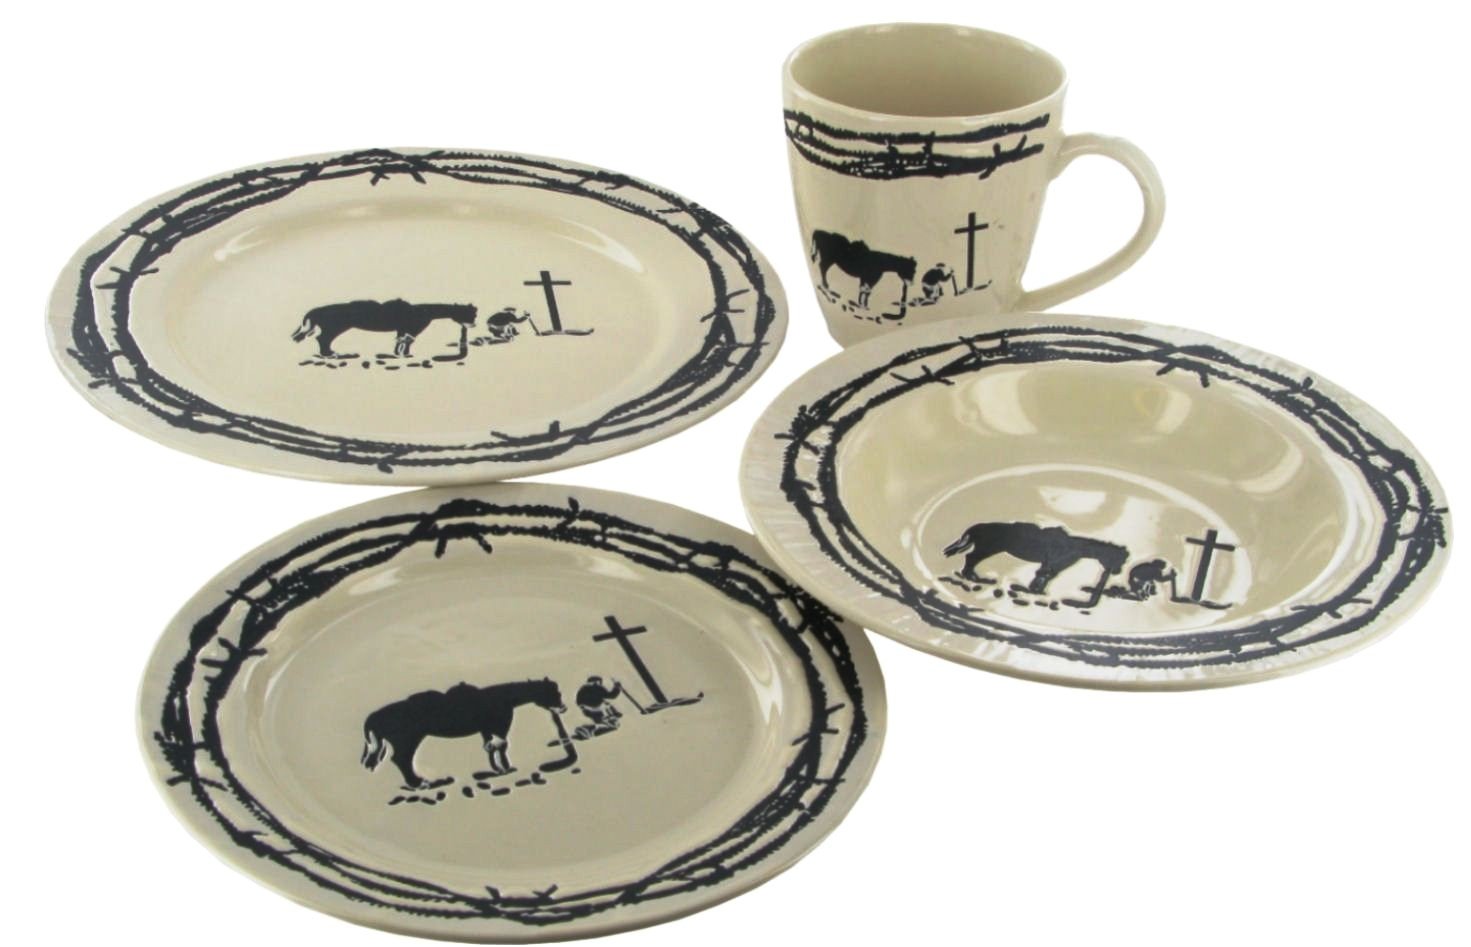 western praying cowboy dinnerware set creme rwsa9127